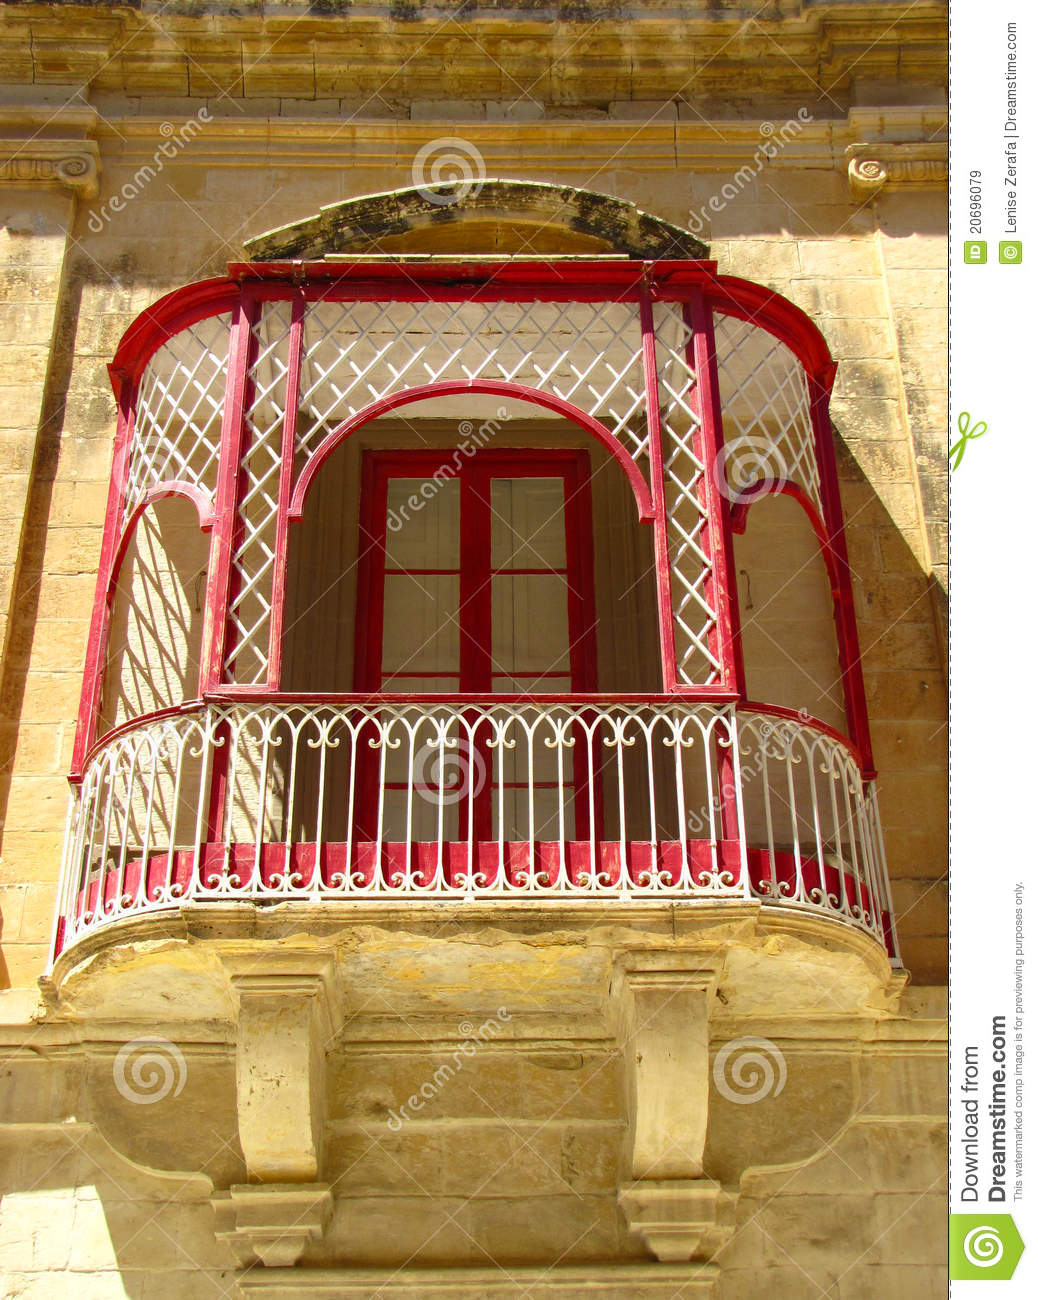 Balcony in mdina malta stock image image of culture for Balcony history